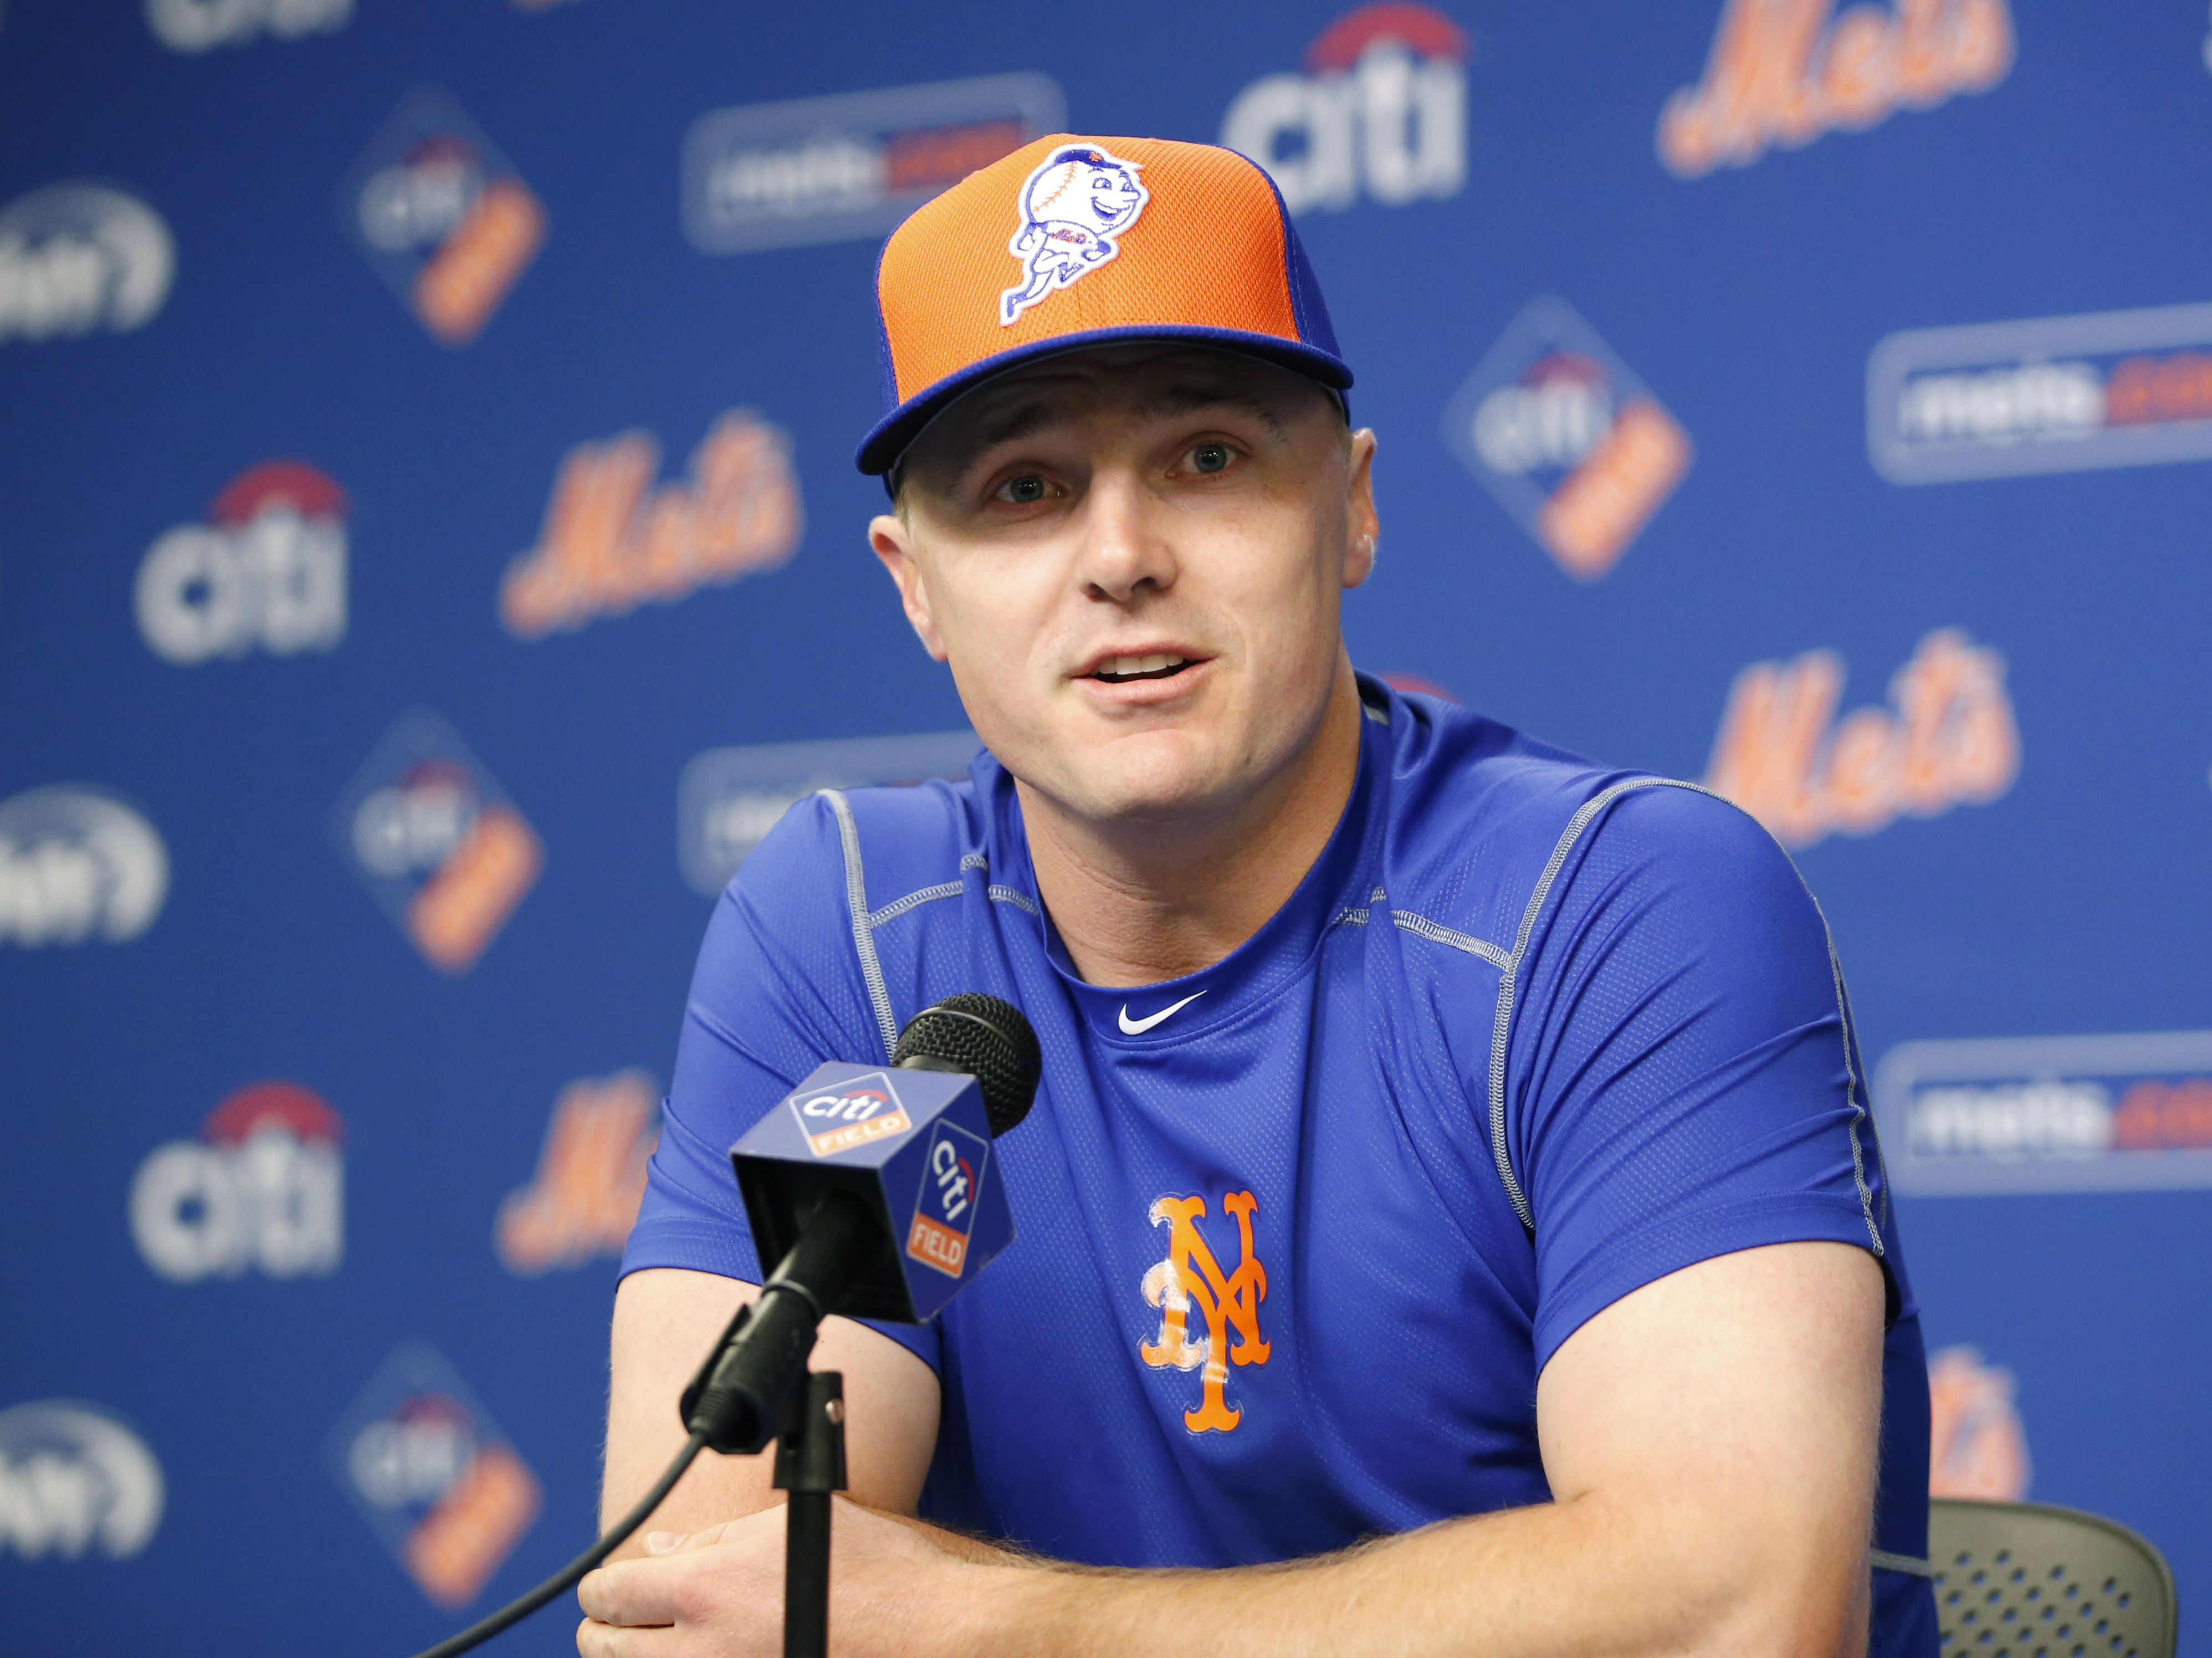 New York Mets outfielder Jay Bruce speaks to the media during an introductory press before playing in his first baseball game as a Met, Tuesday, Aug. 2, 2016, in New York. The Mets obtained Bruce from the Cincinnati Reds for young infielder Dilson Herrera